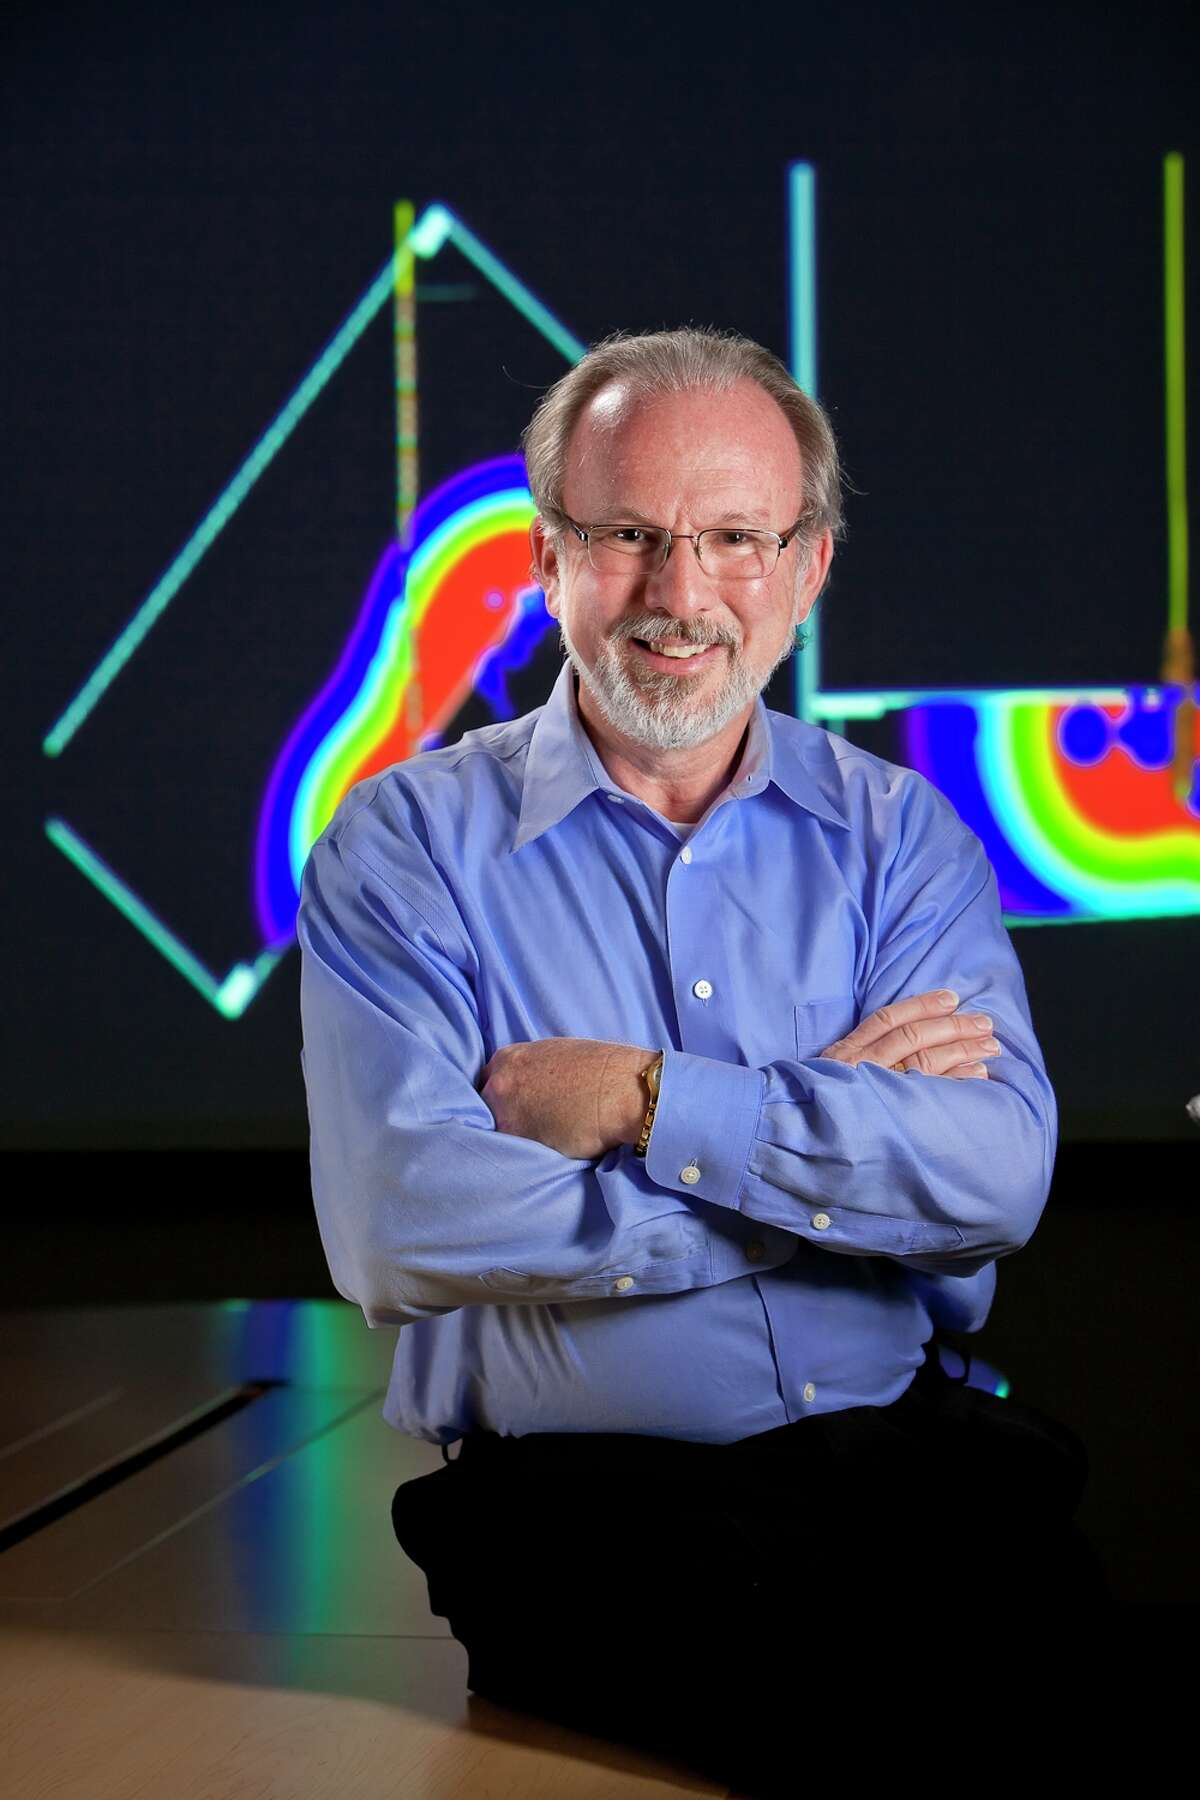 Peter Duncan, founder and CEO of Houston-based MicroSeismic, poses with a display of seismic data. The company uses monitors near the surface to capture and analyze the sounds of hydraulic fracturing far below.